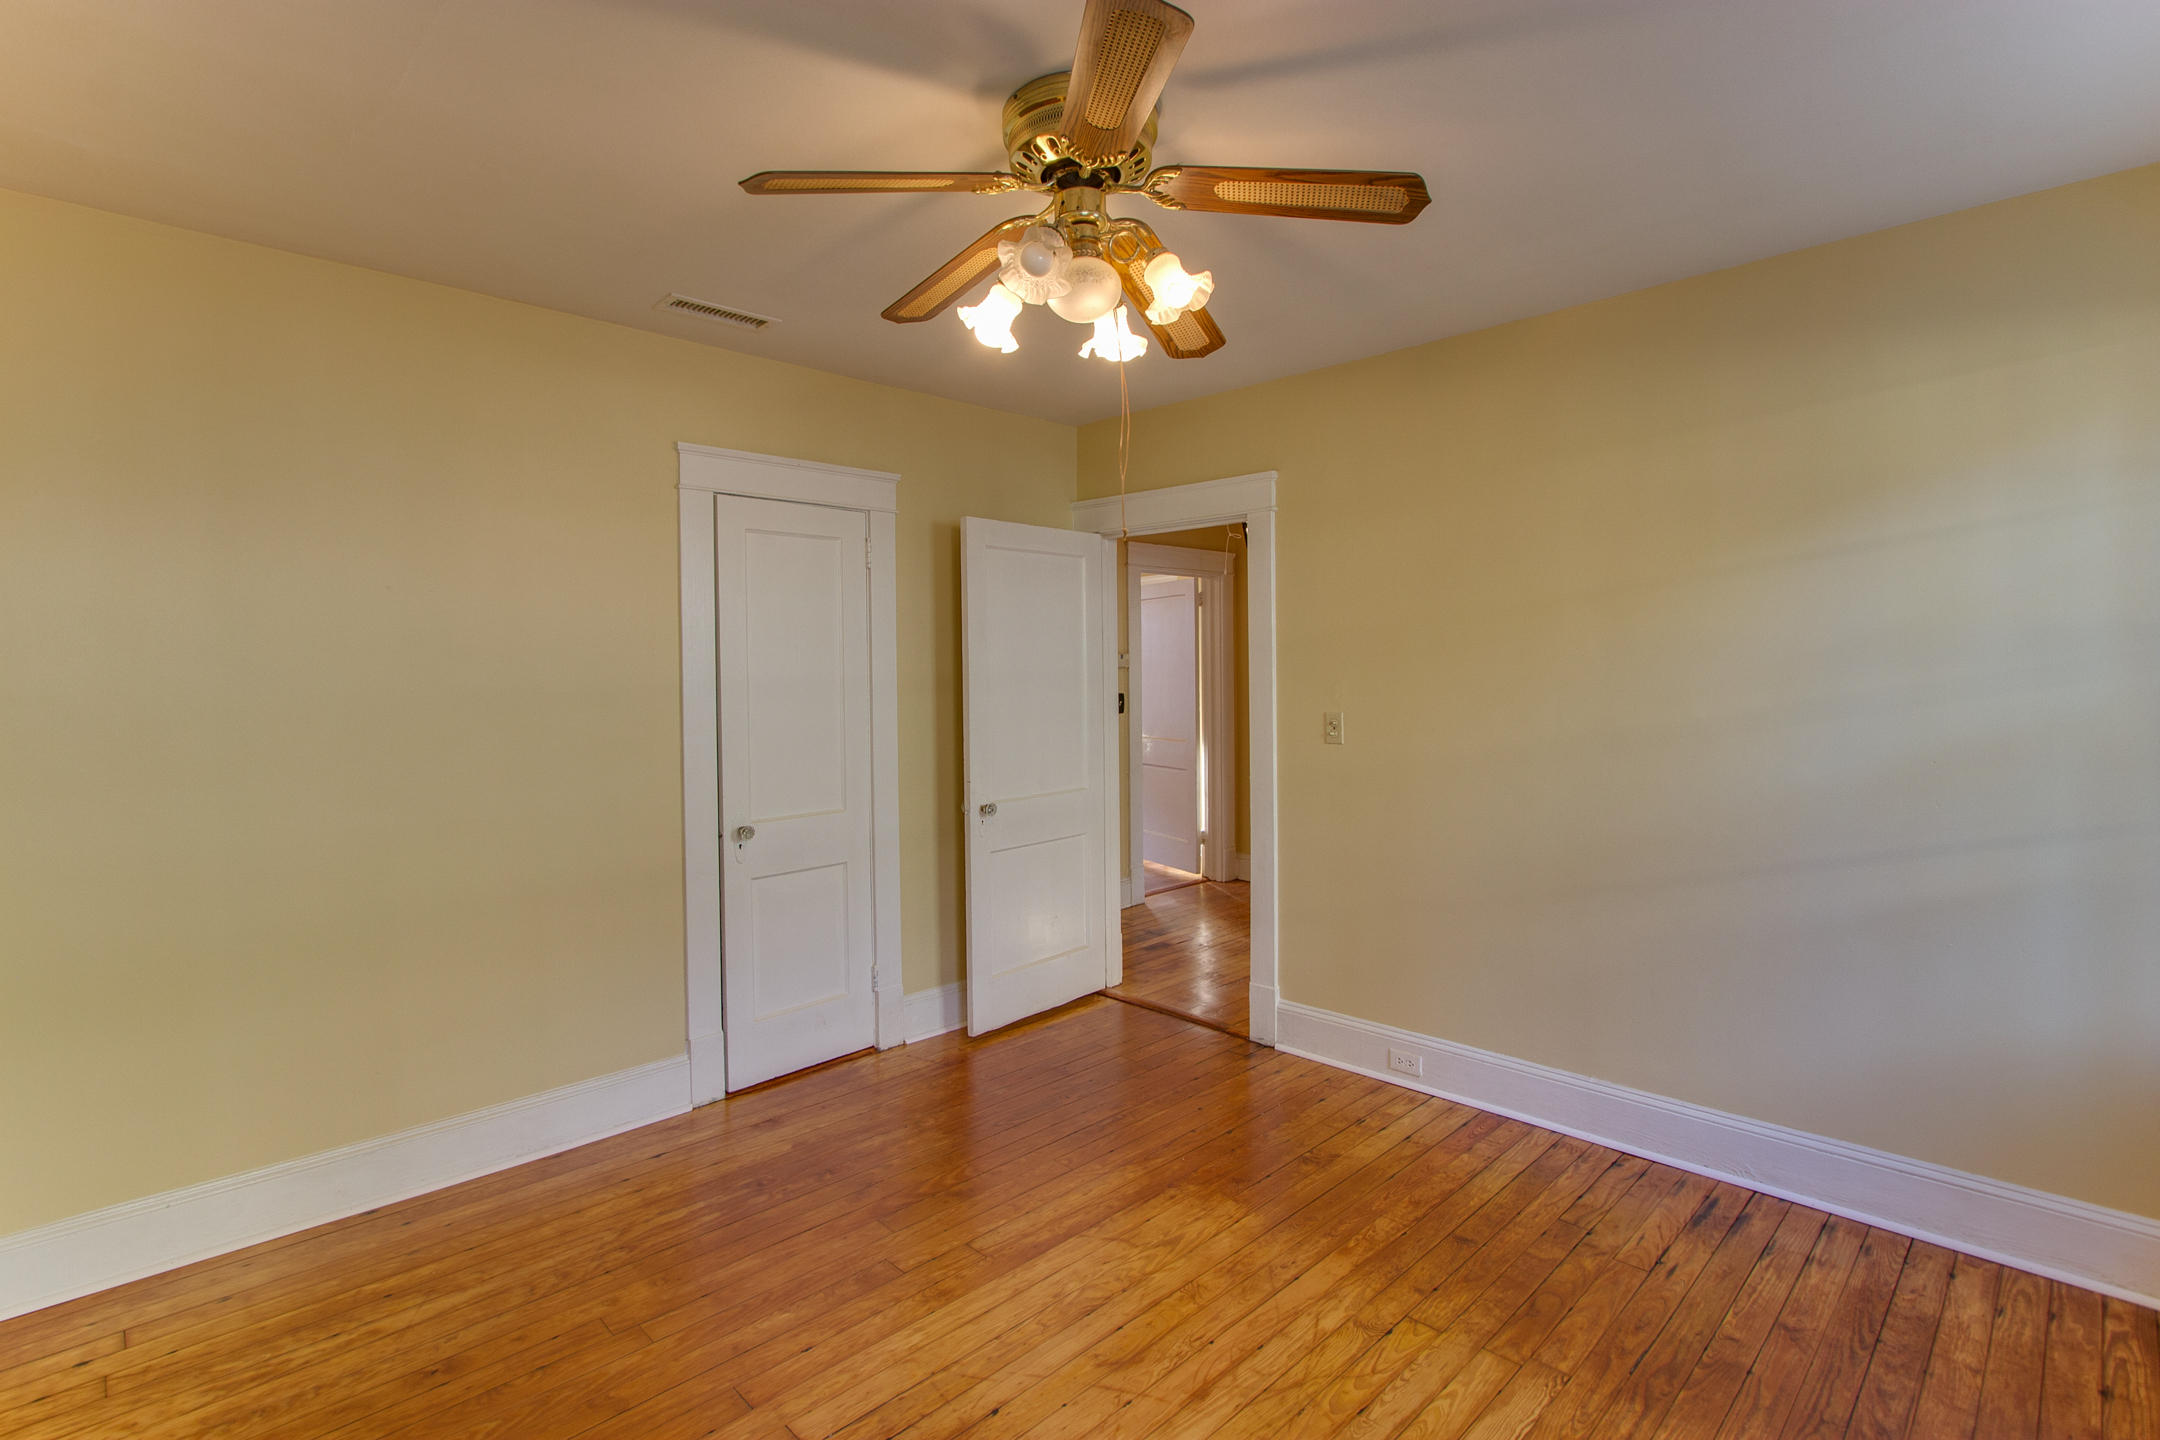 Home for sale 26 Alberta Avenue, Wagener Terrace, Downtown Charleston, SC